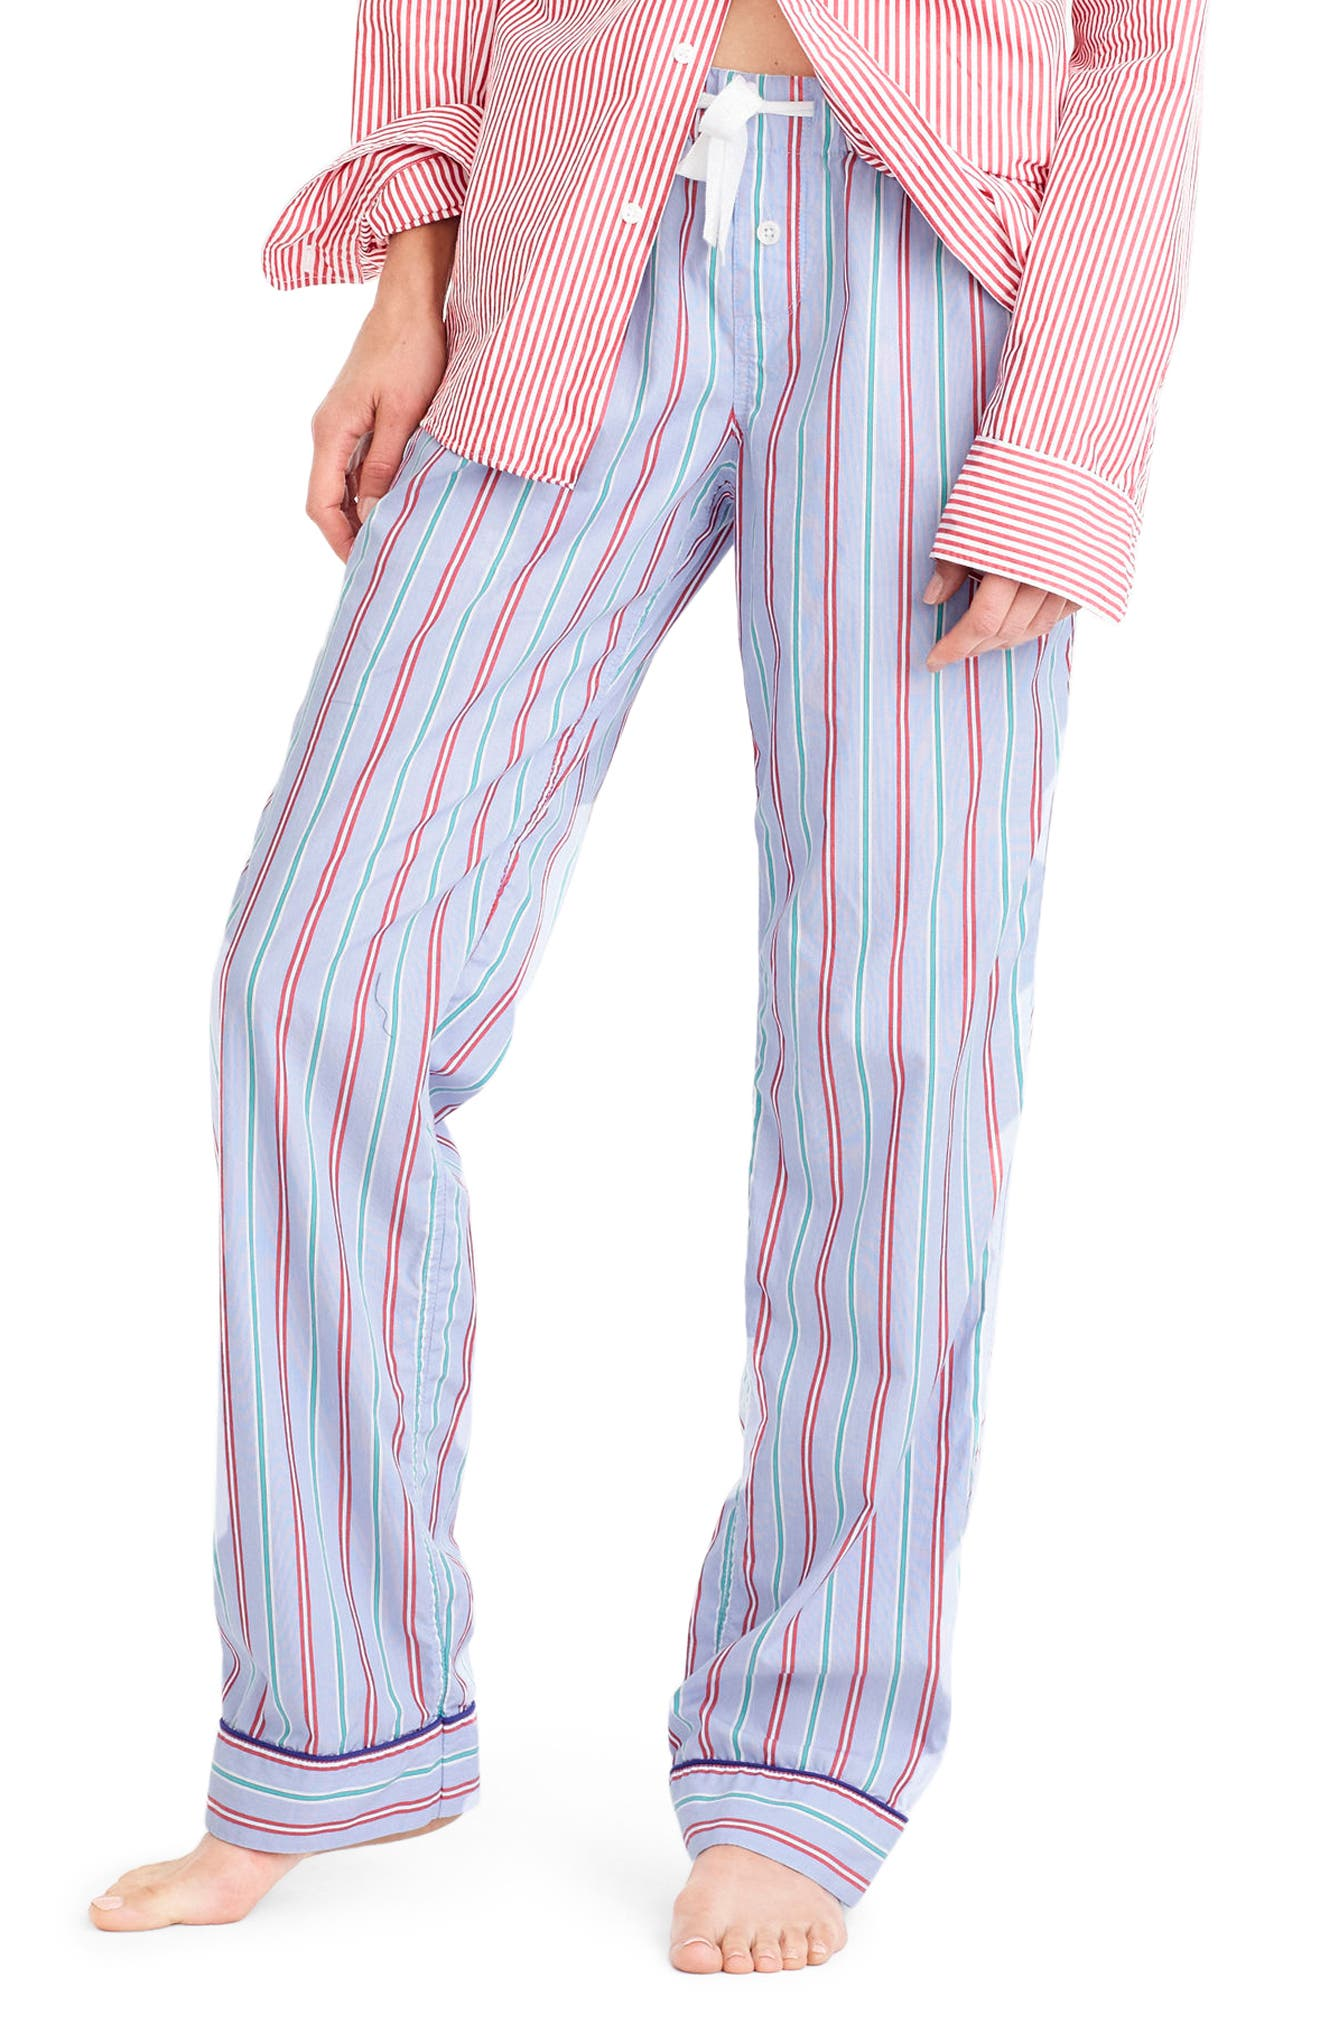 Candy Cane Pajama Pants,                             Main thumbnail 1, color,                             400